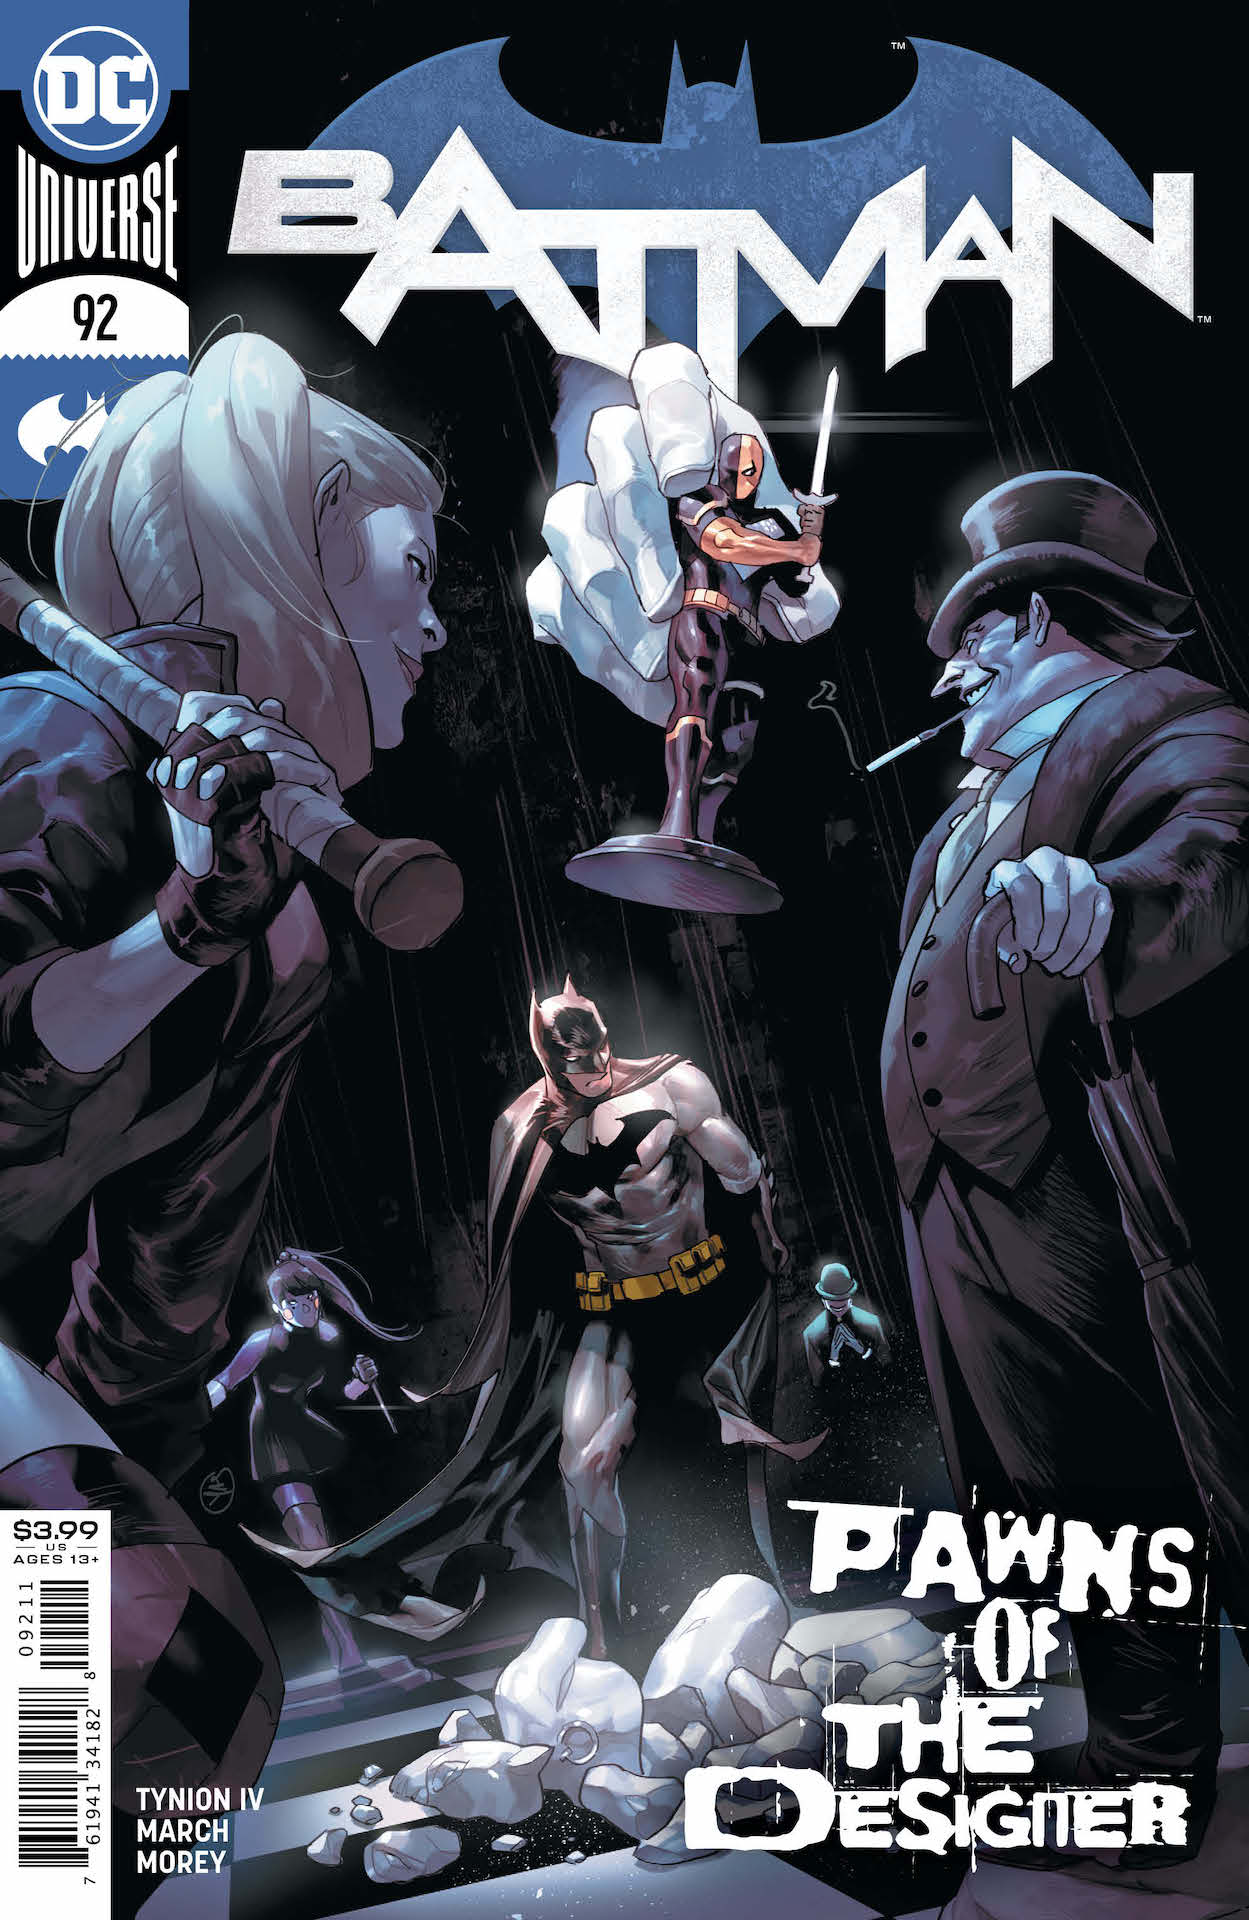 """DC Preview: Batman #92 - """"The city, it's turned green"""""""